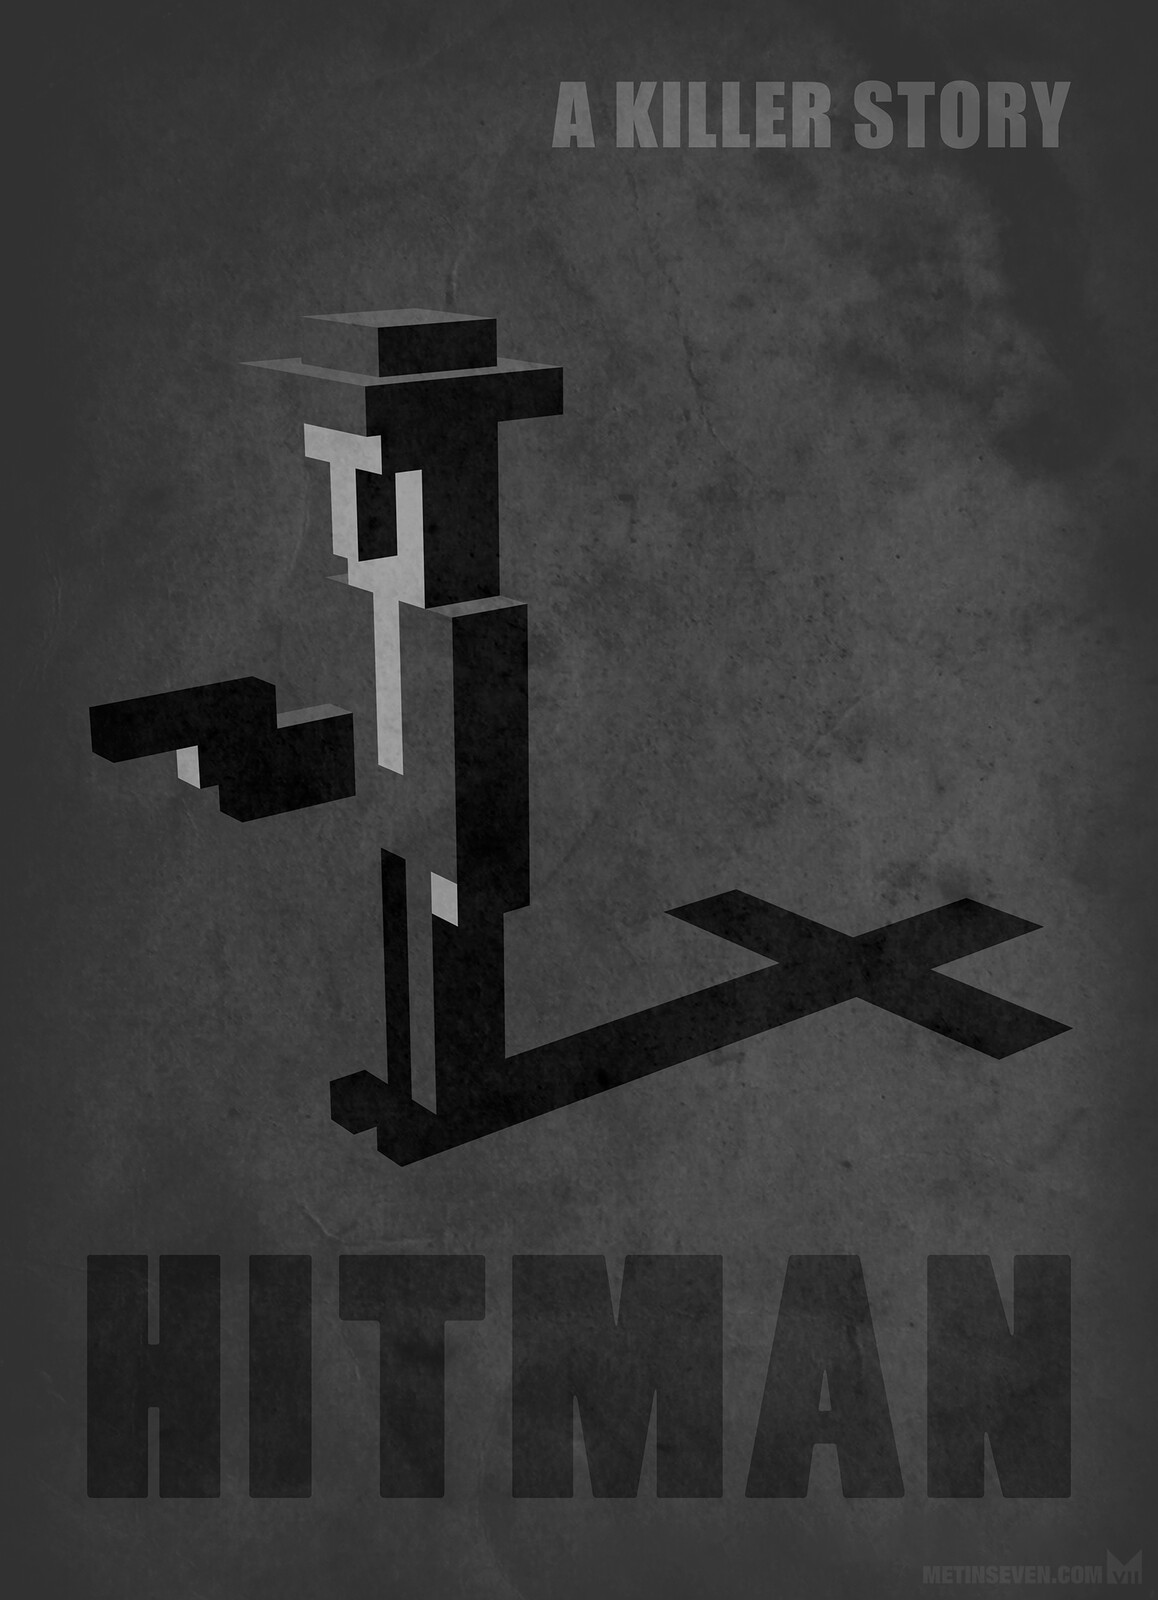 Hitman voxel-style poster design